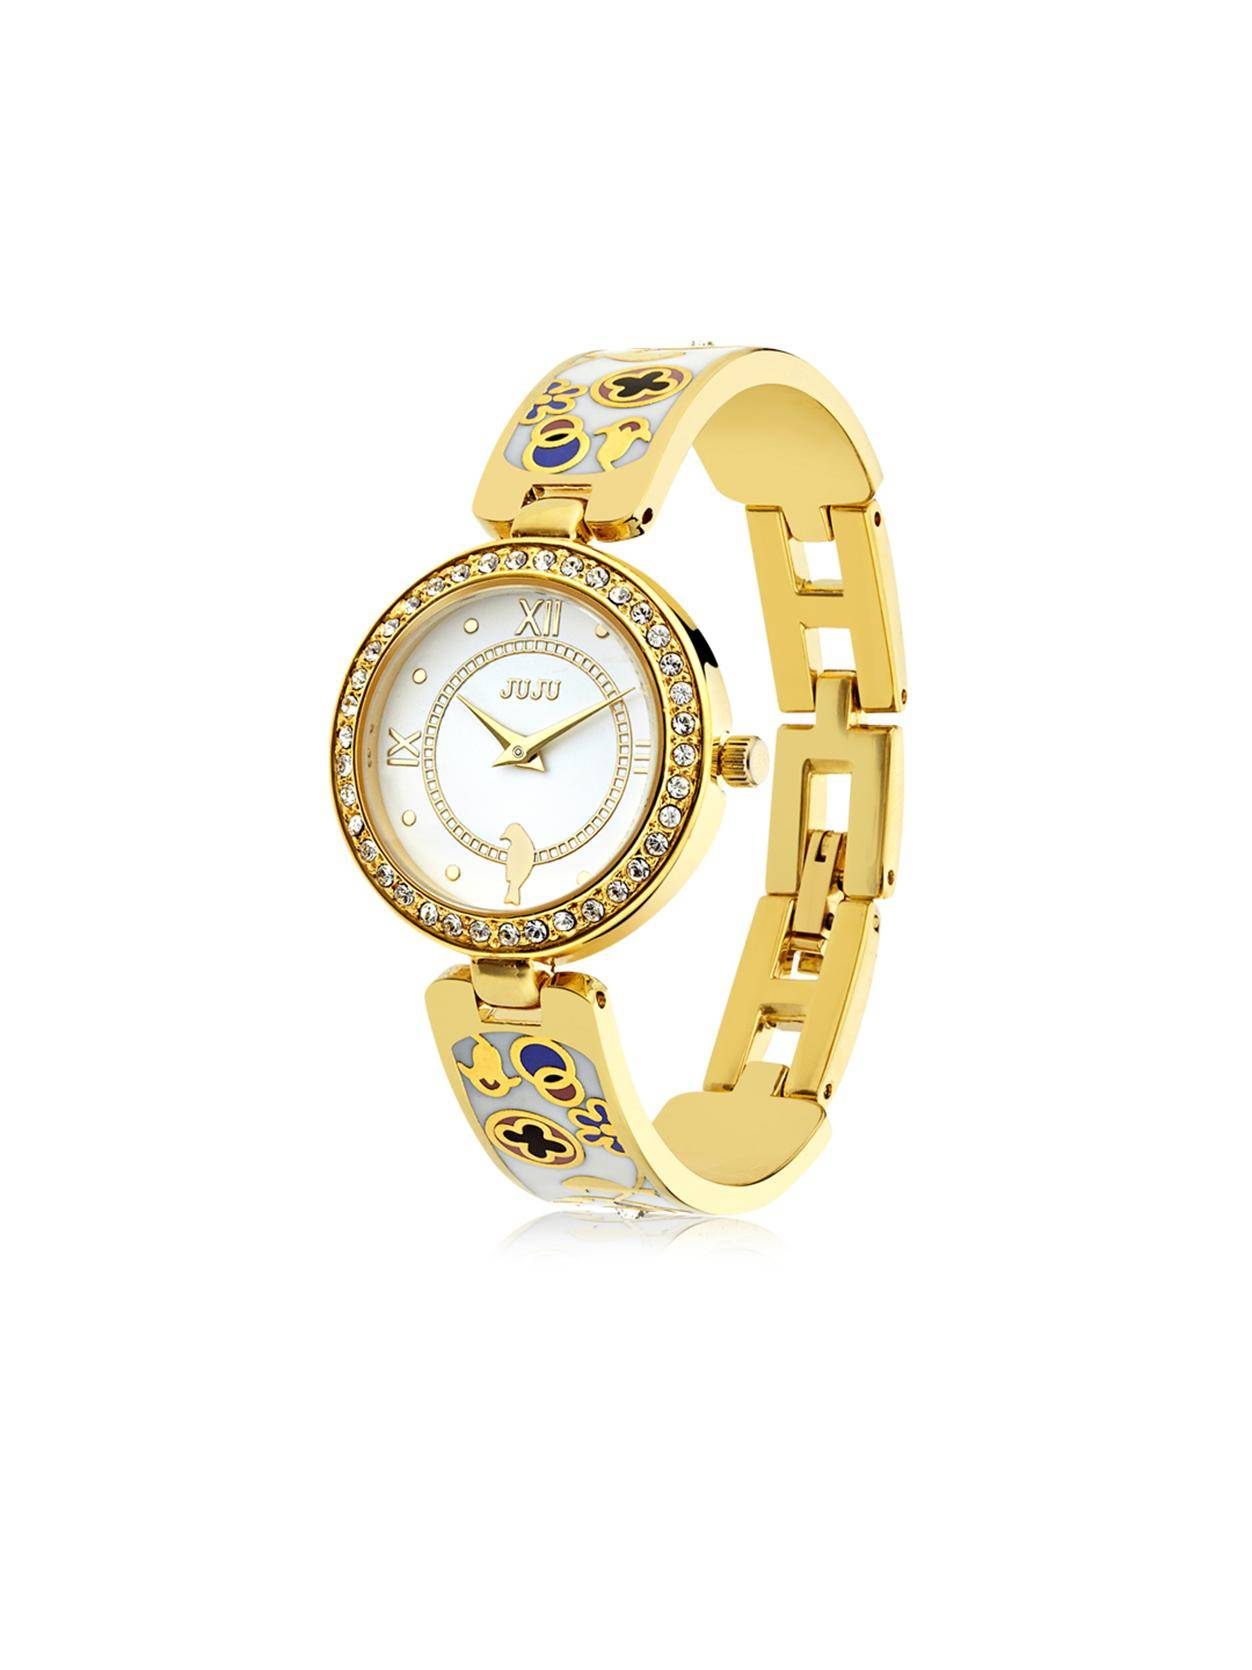 Flower world watch-18K gold plating metal watch with enamel